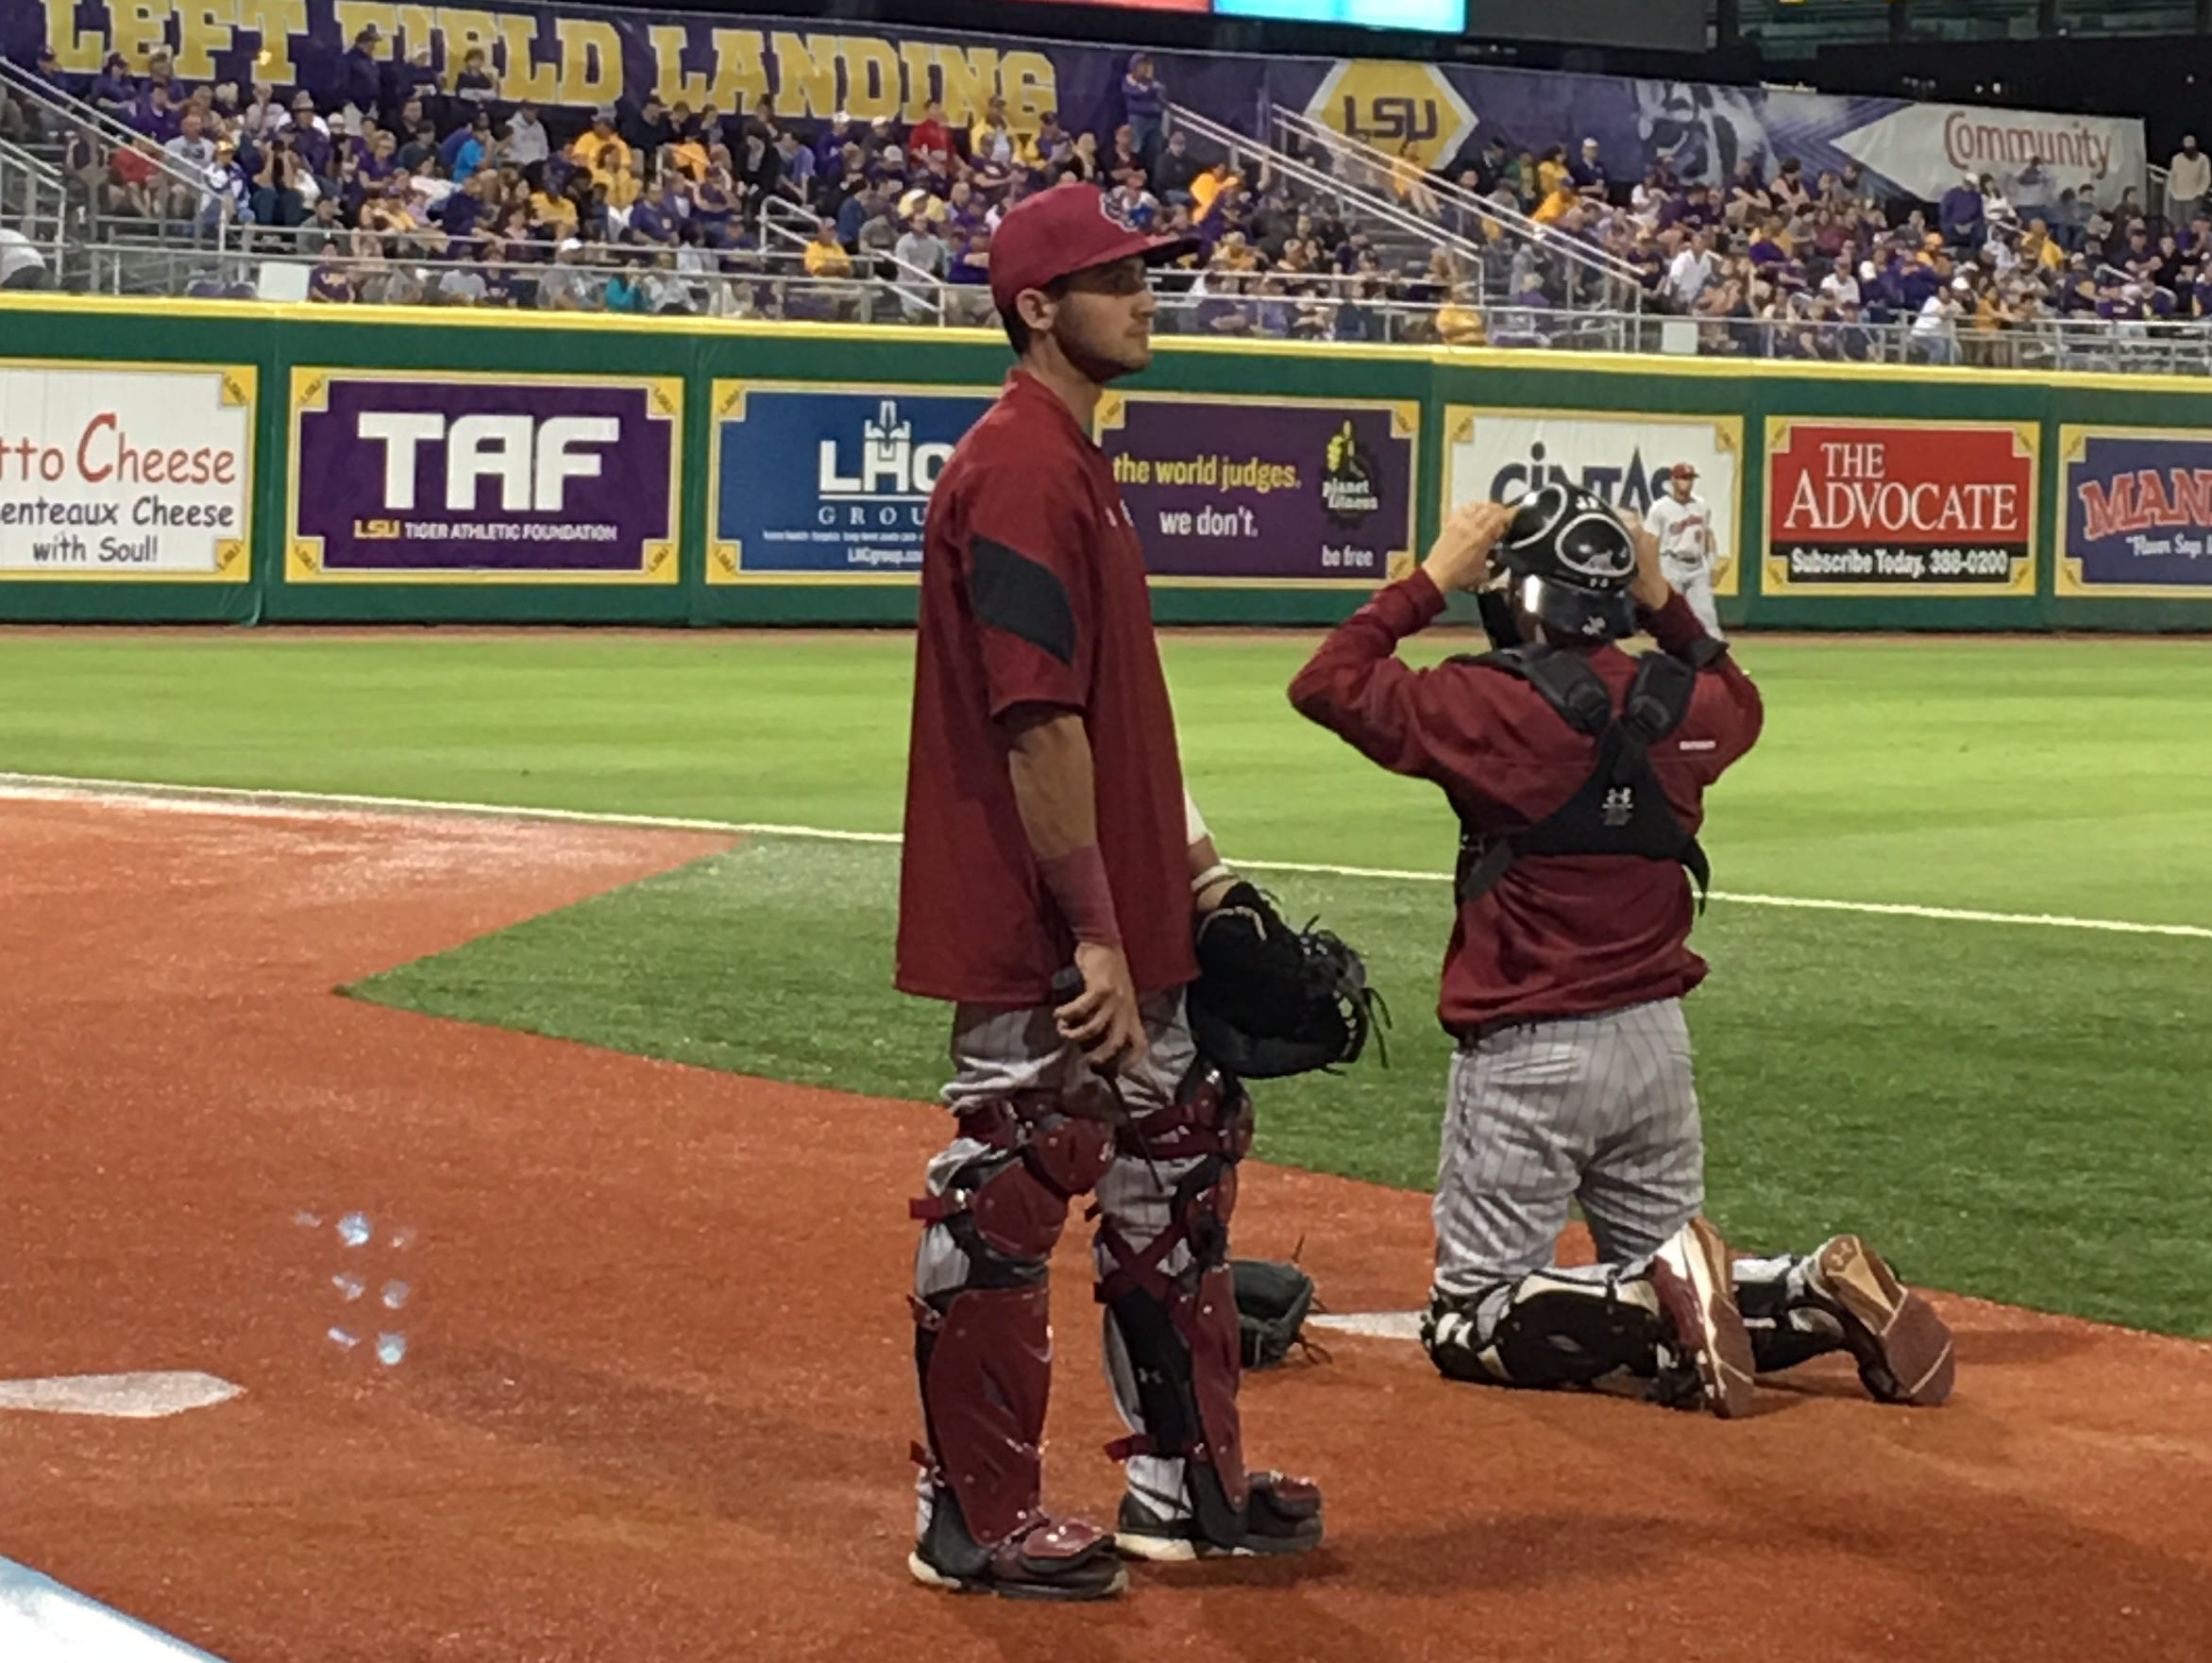 University of South Carolina bullpen catcher John Hawkins, a 2013 St. Joseph's Catholic School graduate, takes it all in during the Gamecocks' 5-2 loss at LSU May 6 in Baton Rouge, Louisiana.